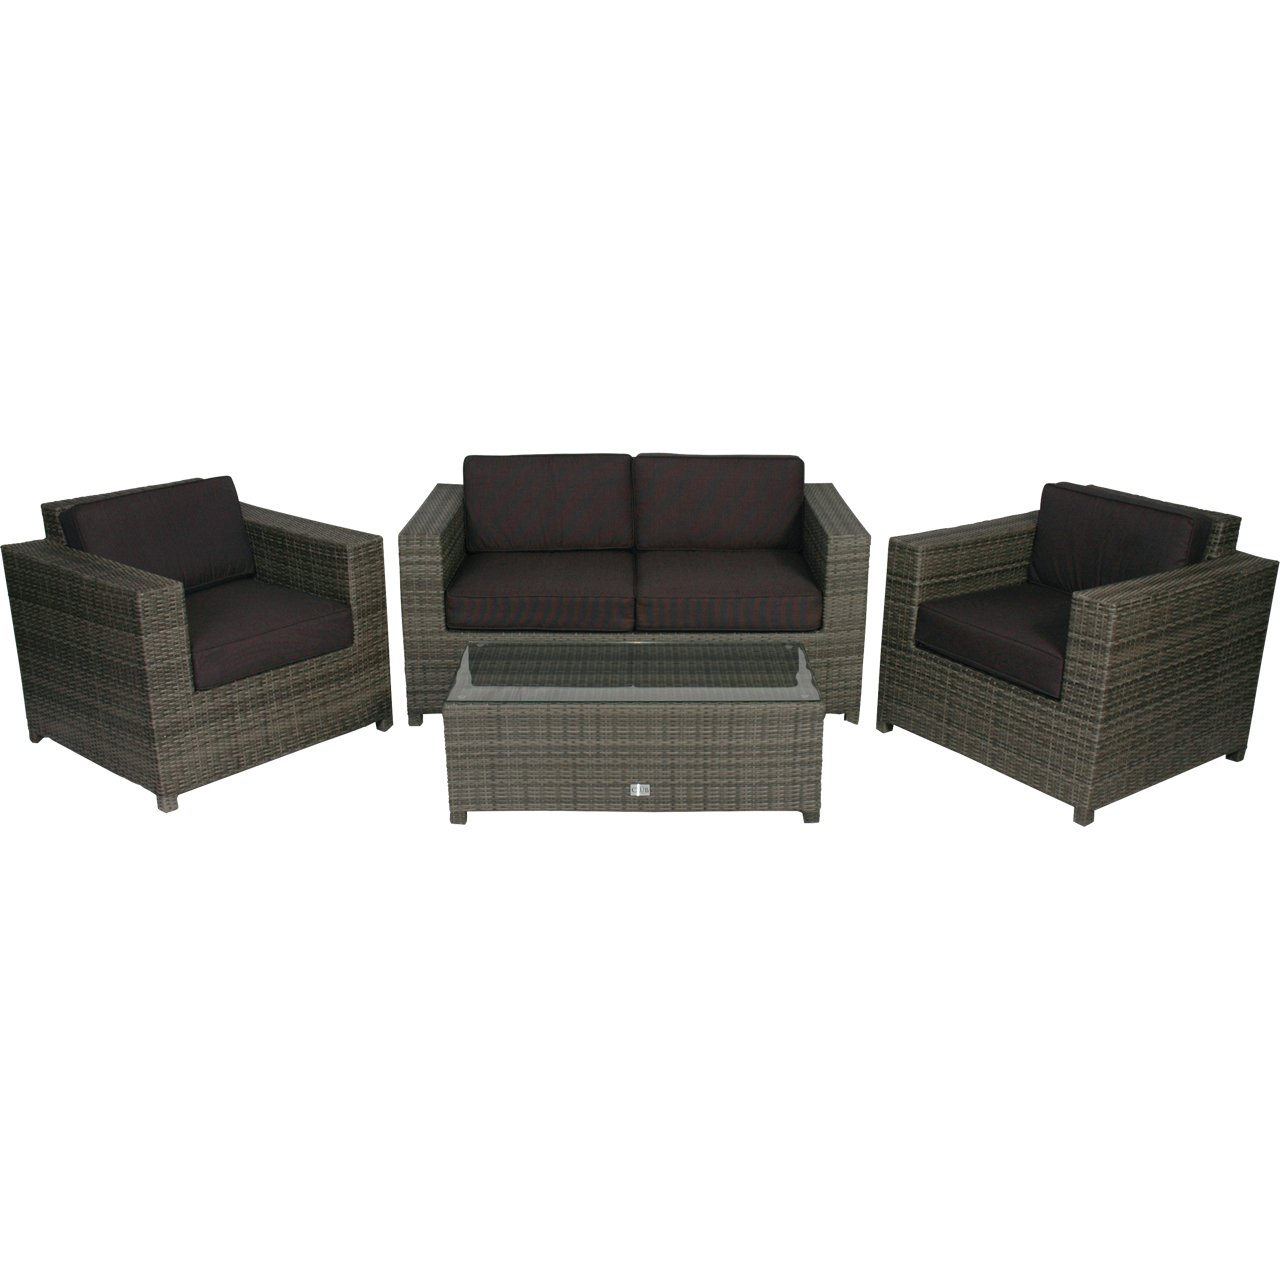 poly rattan lounge set 4tlg grau gartenm bel tisch glasplatte g nstig bestellen. Black Bedroom Furniture Sets. Home Design Ideas